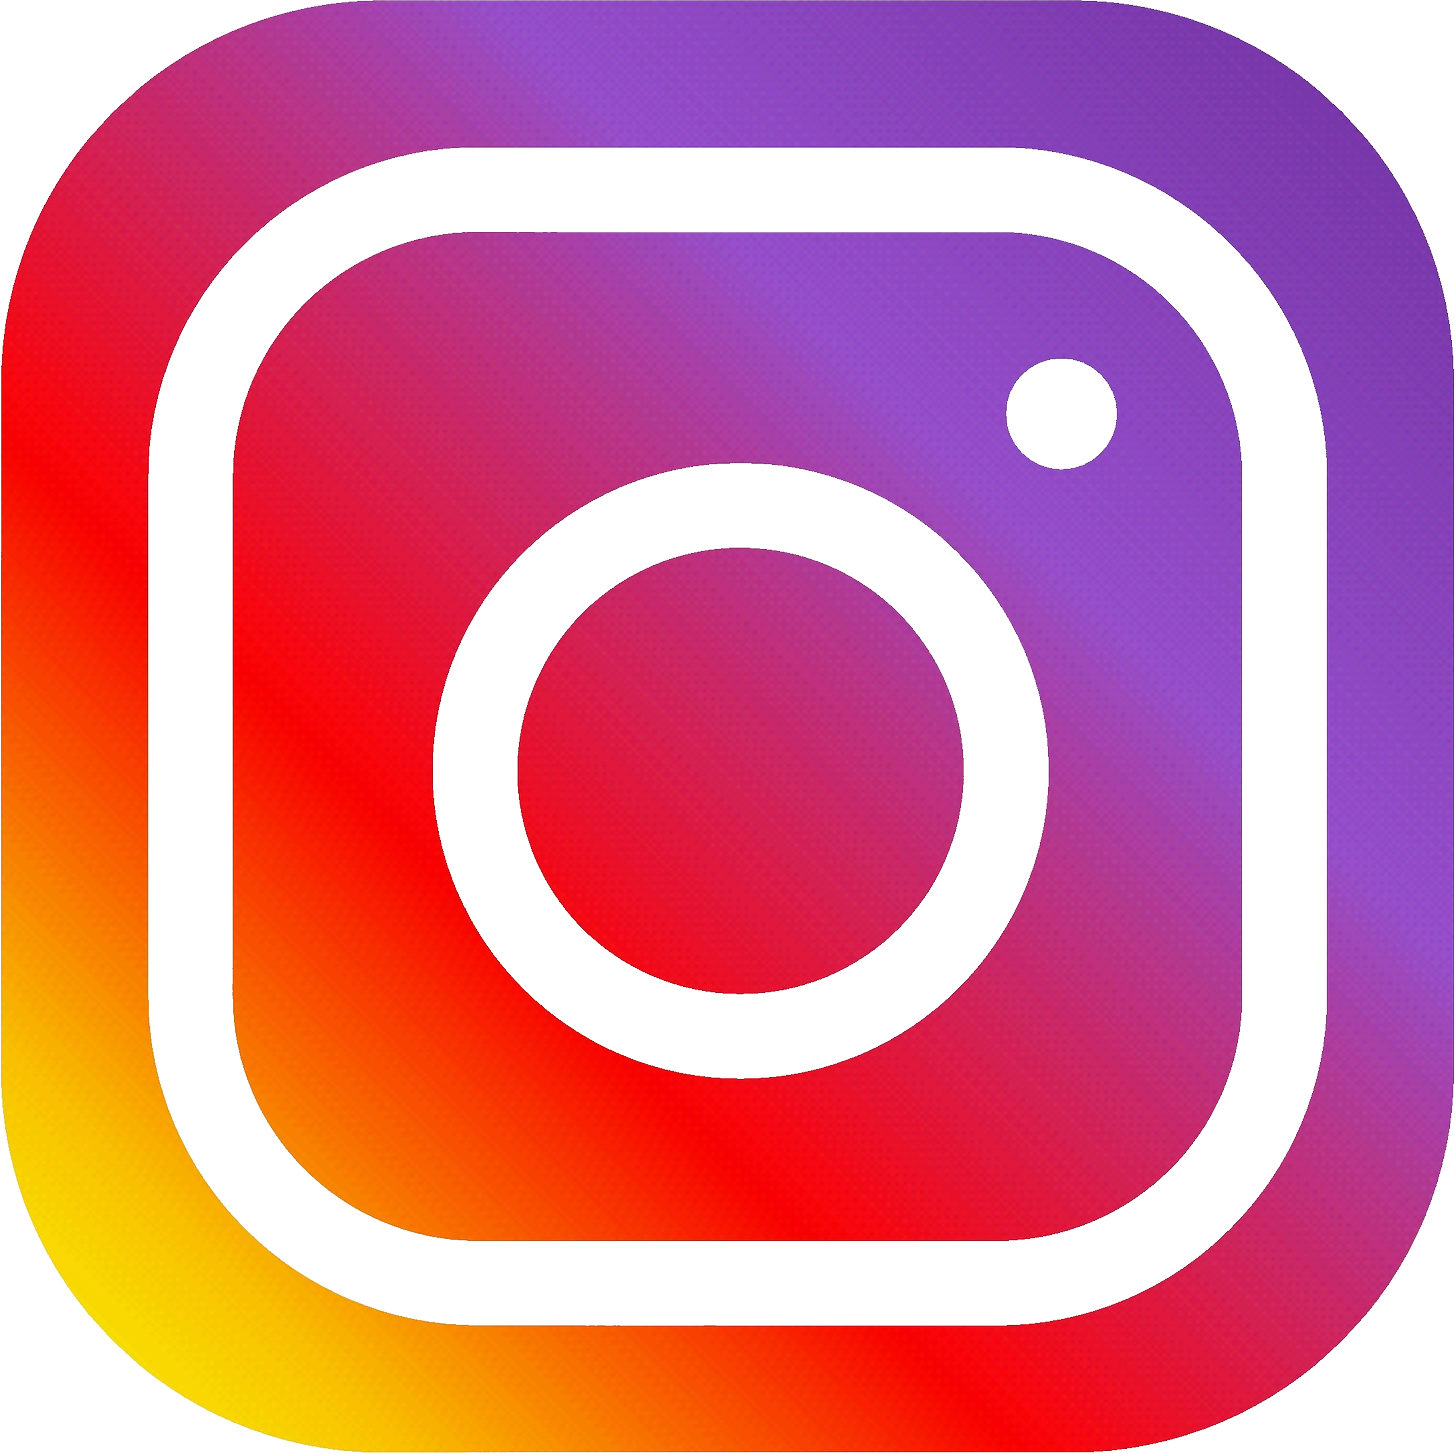 instagram-png-instagram-png-logo-1455